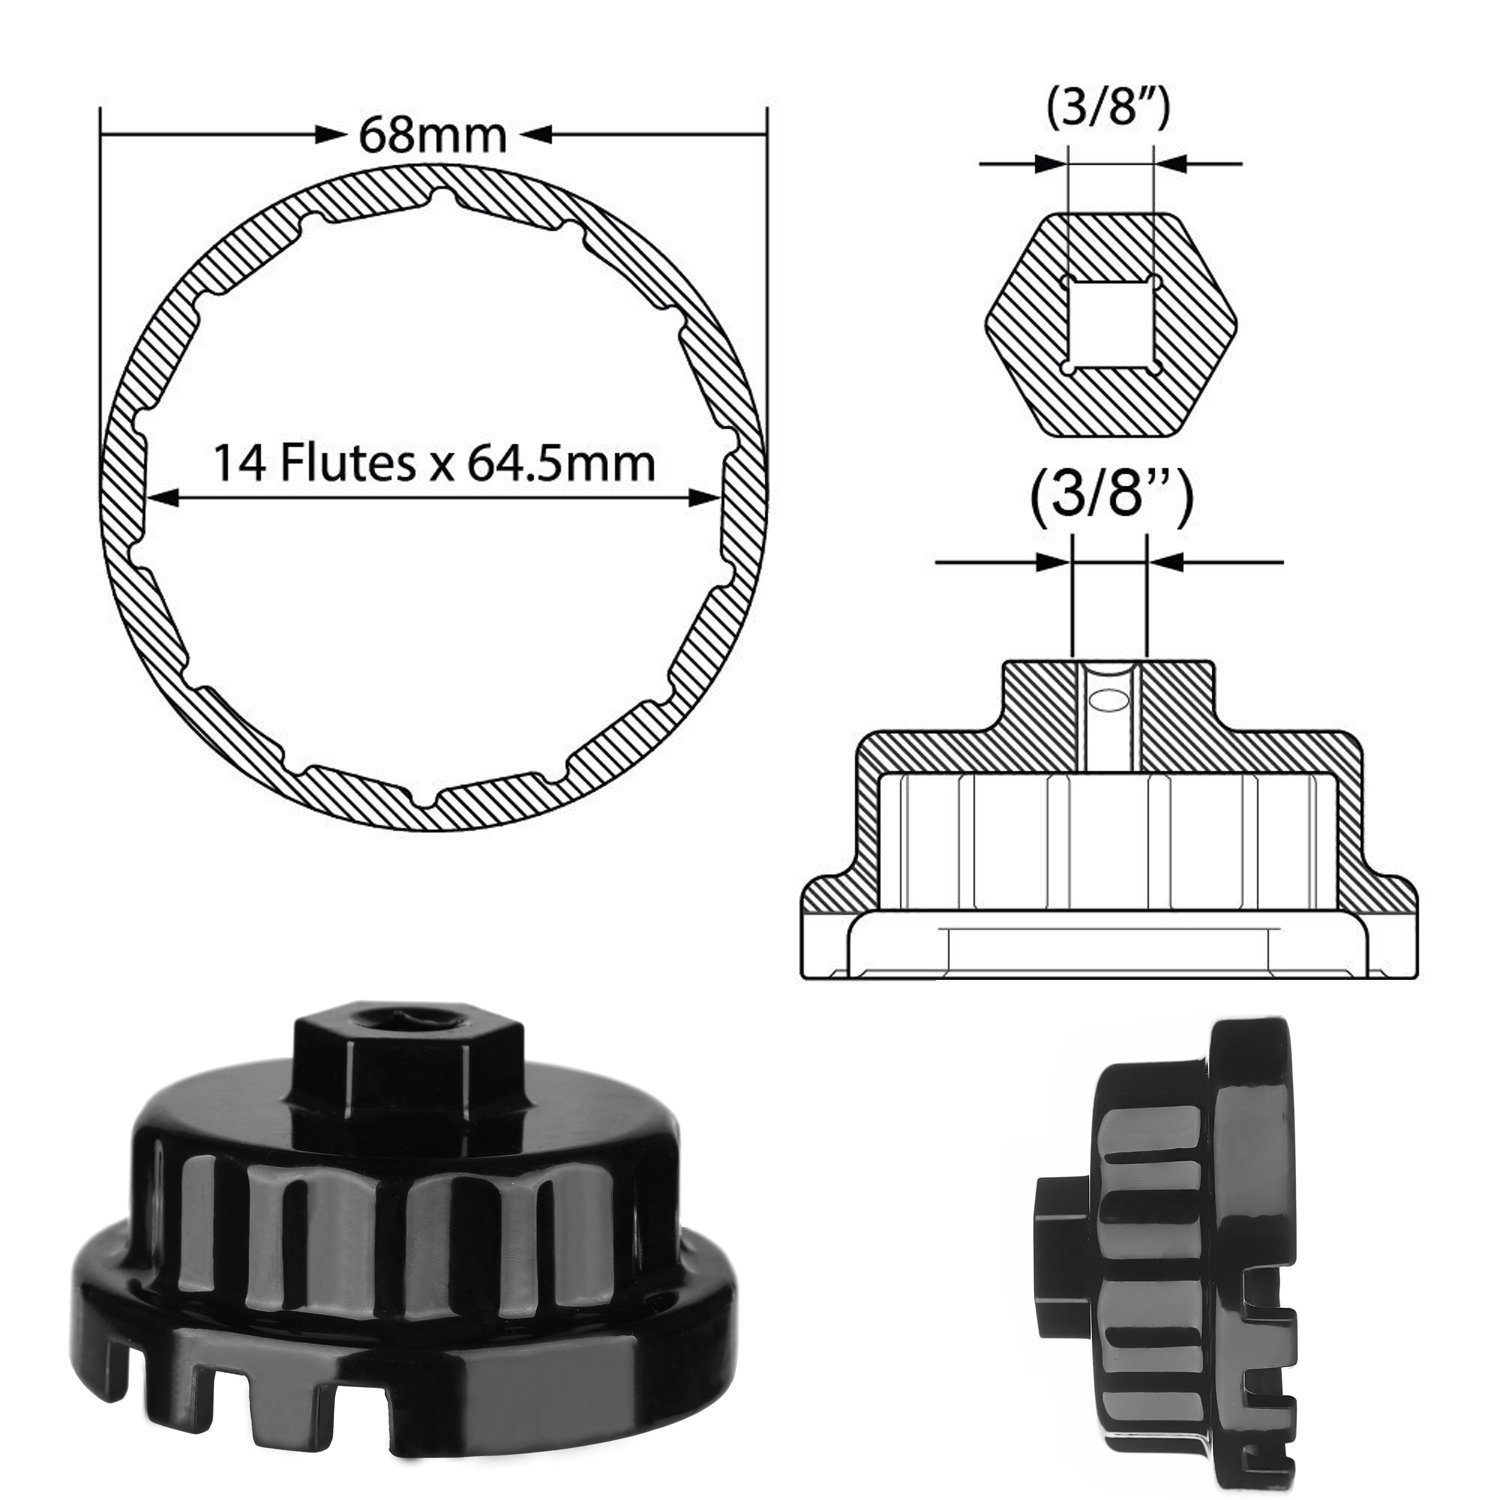 Tools Toyota Lexus Oil Filter Wrench For 25l To 57l 2011 Highlander Engine Diagram Engines Perfect Camry Rav4 Sienna Tundra And More Fits 64mm Cartridge